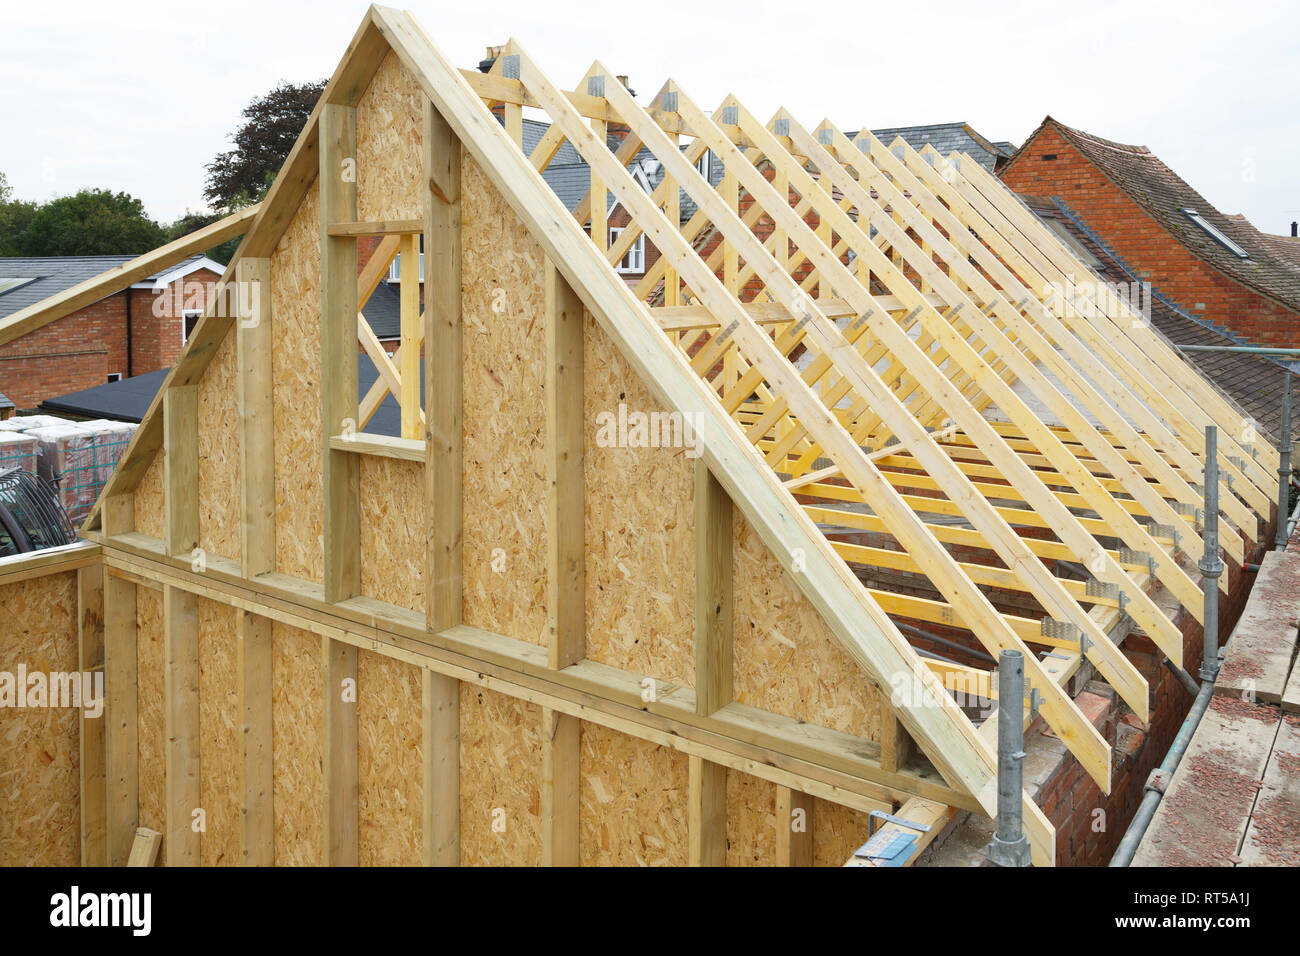 Gable And Wooden Roof Trusses To A Timber Frame House Under ...